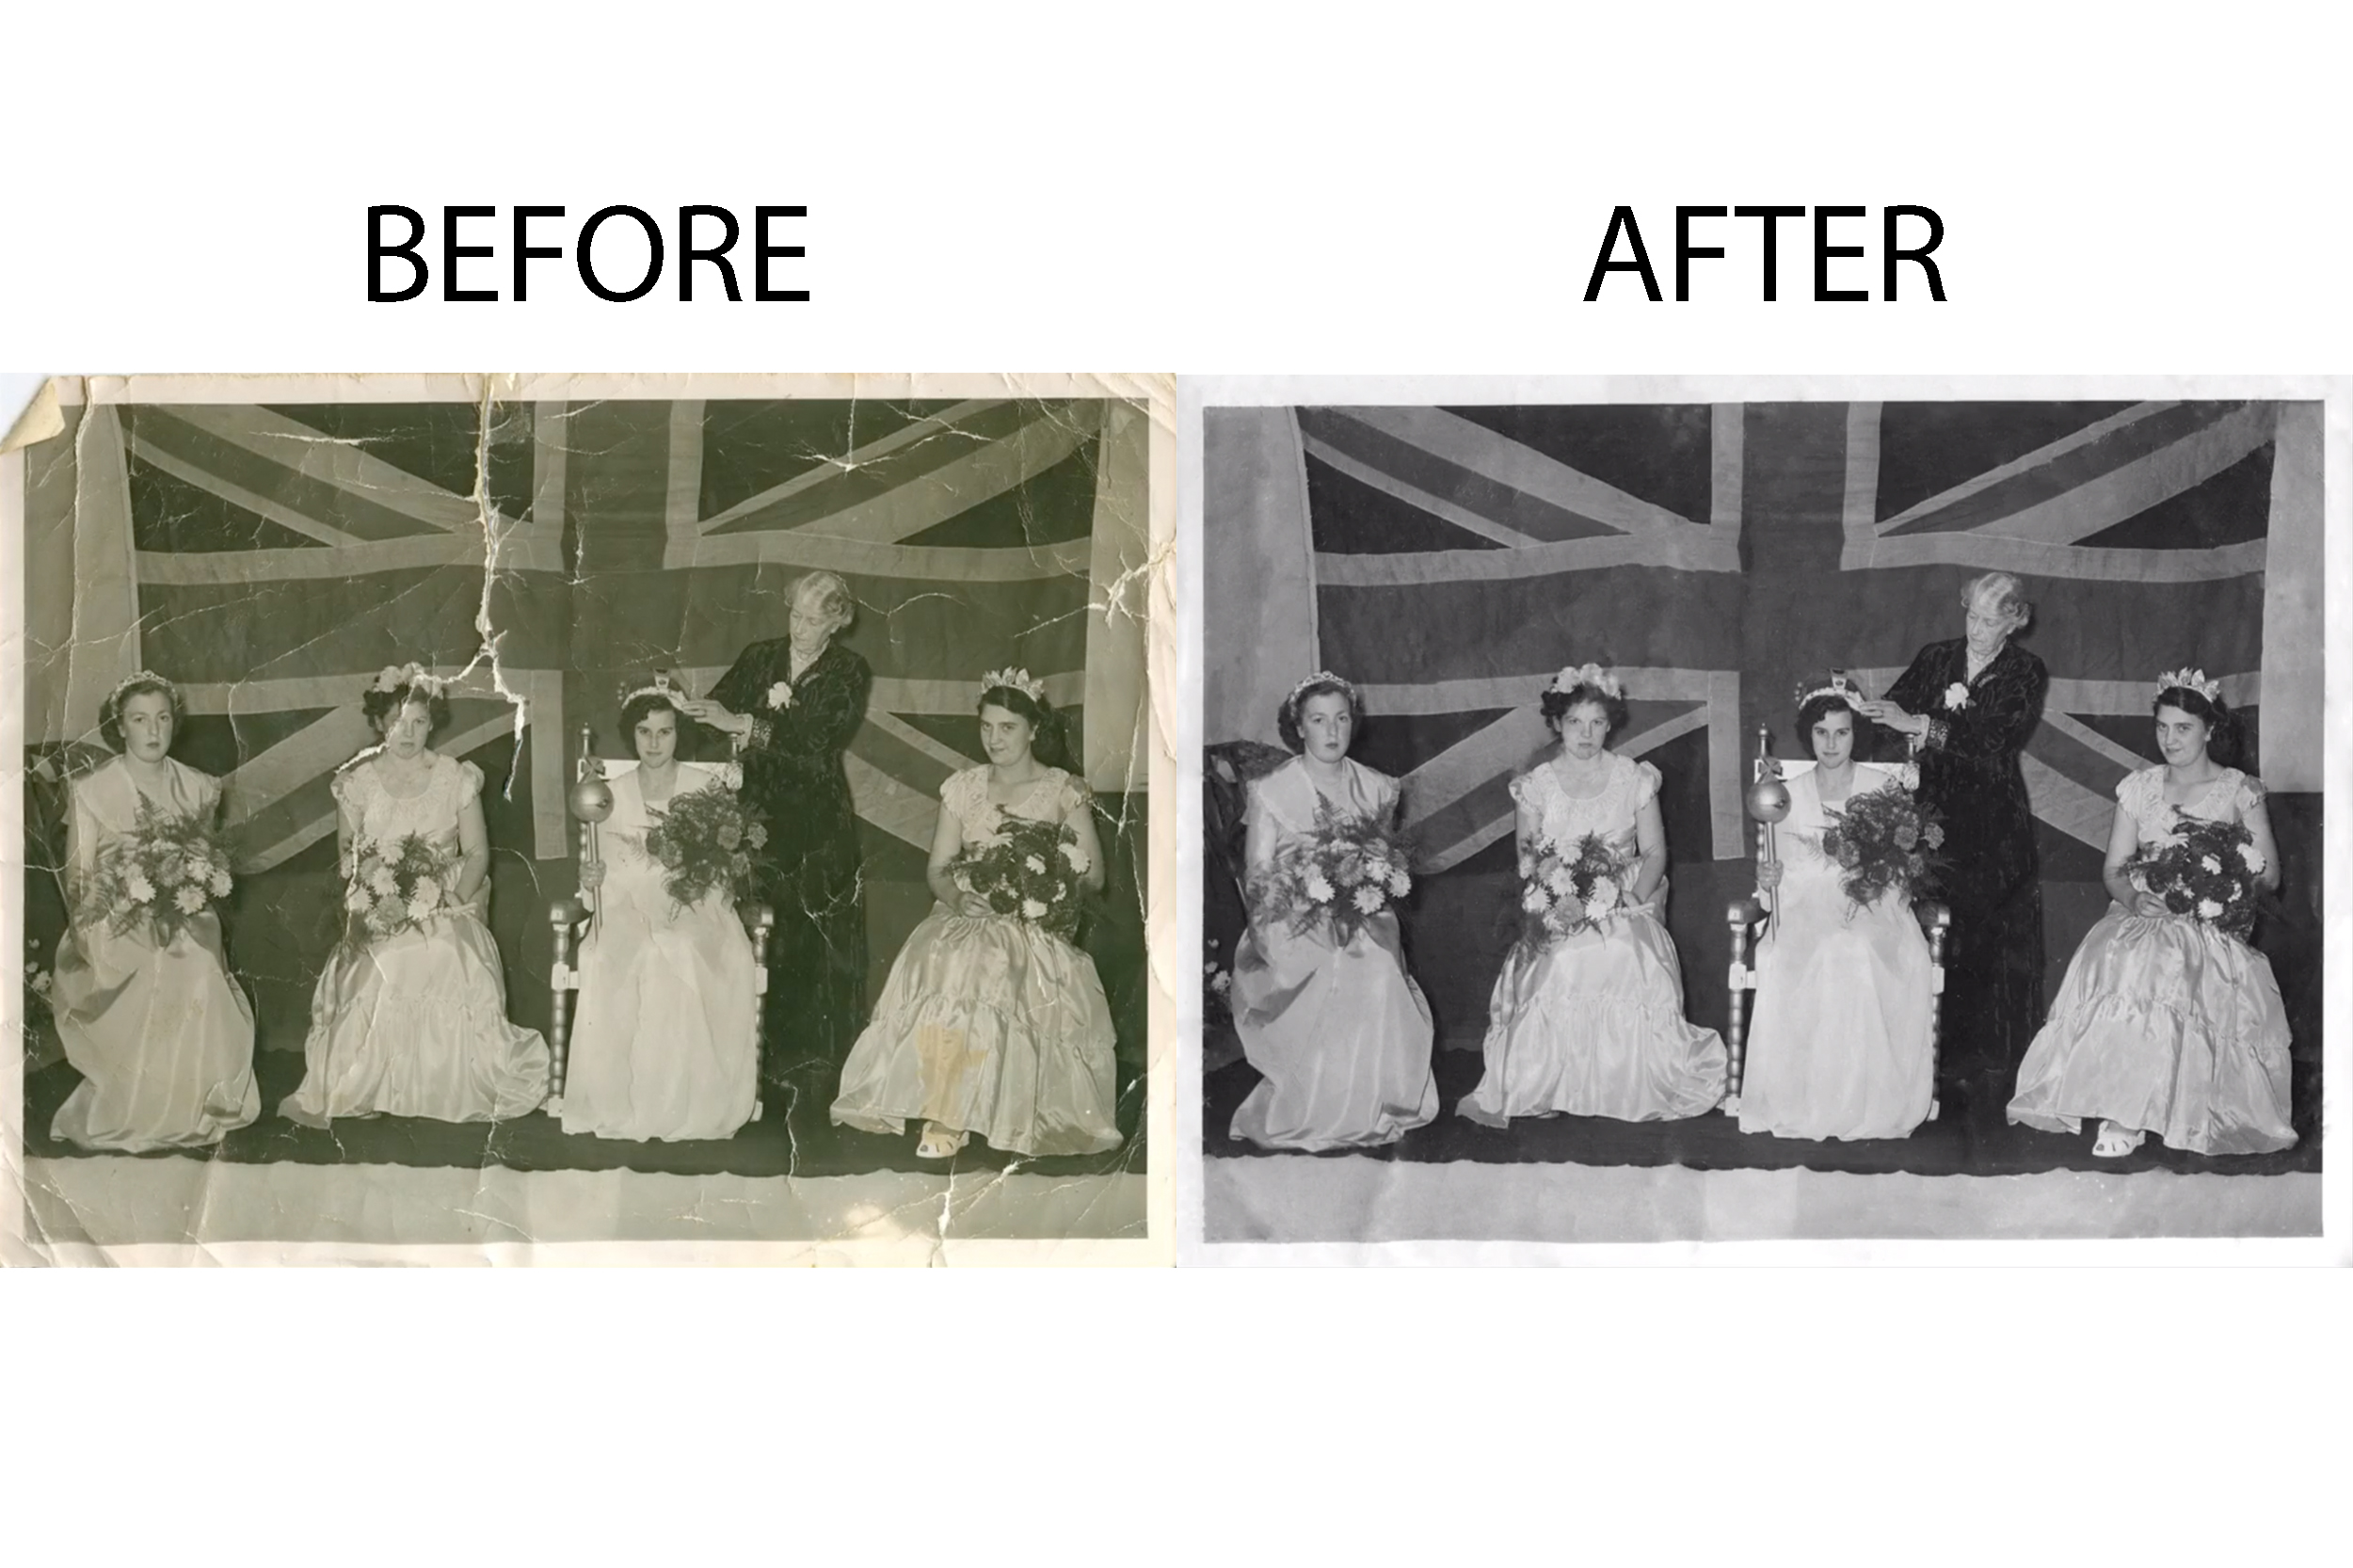 Photo Restoration & Editing - Turn your old photos to a new memory